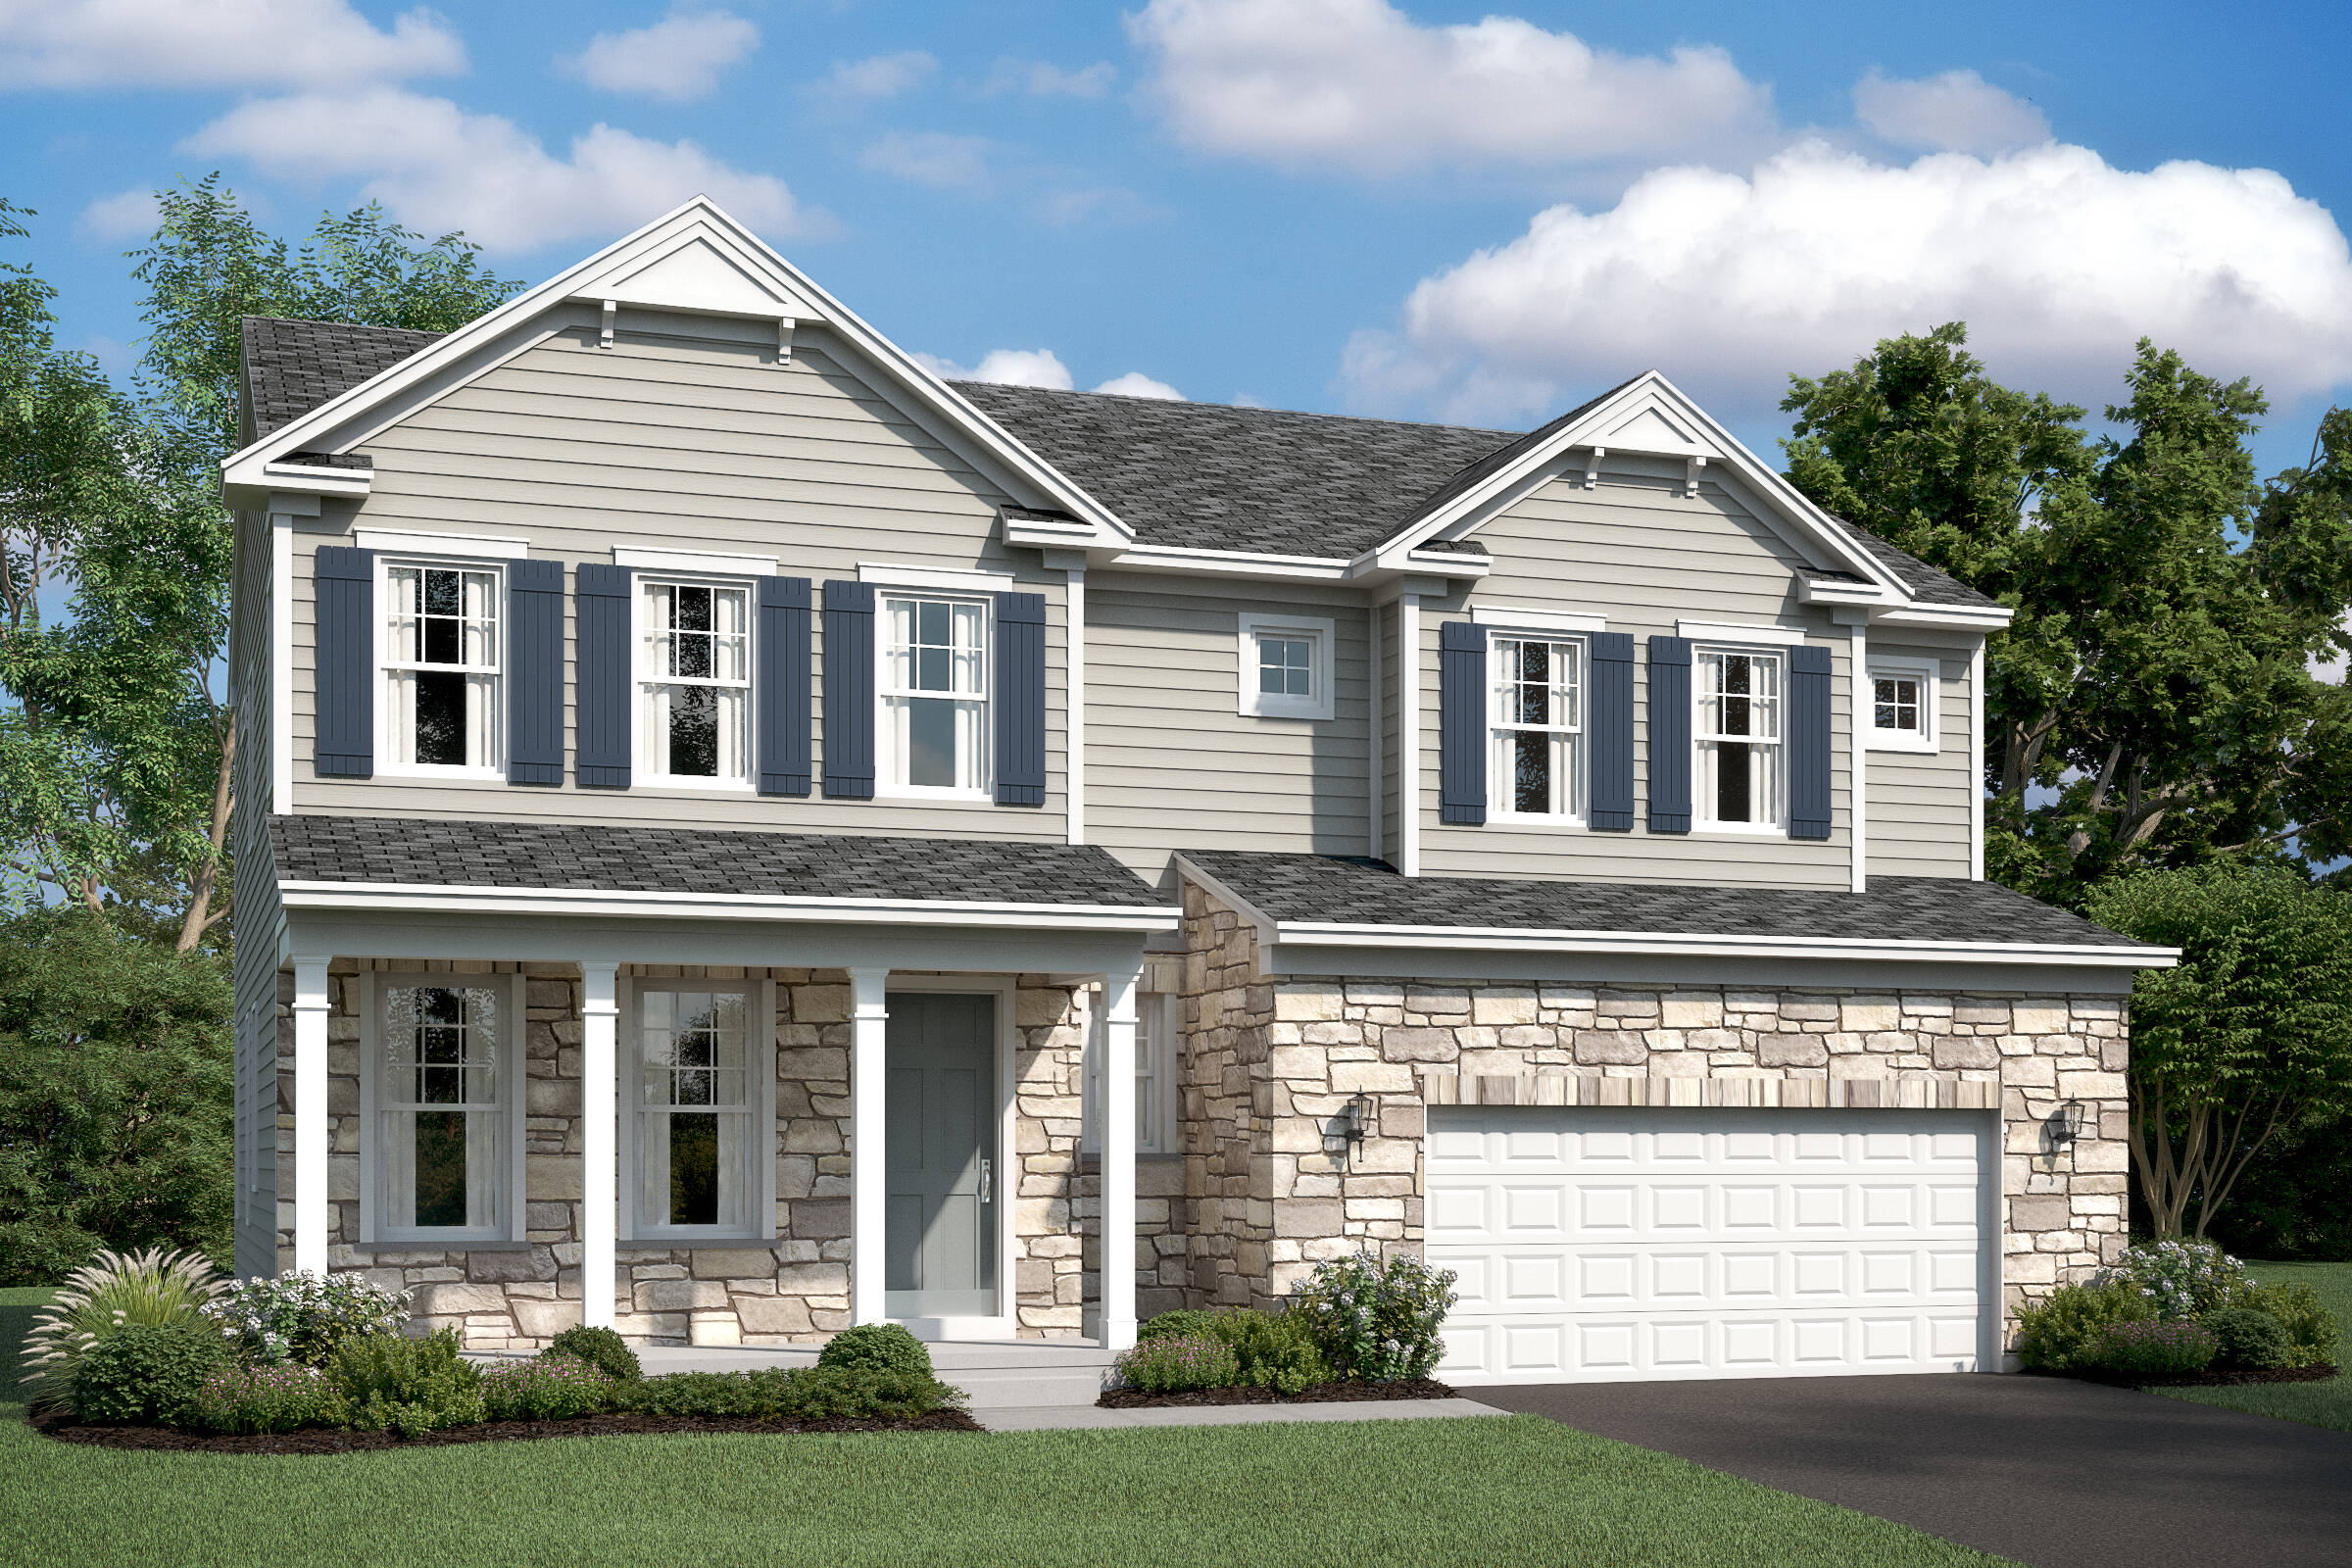 anderson ft new homes at stone mill in maryland